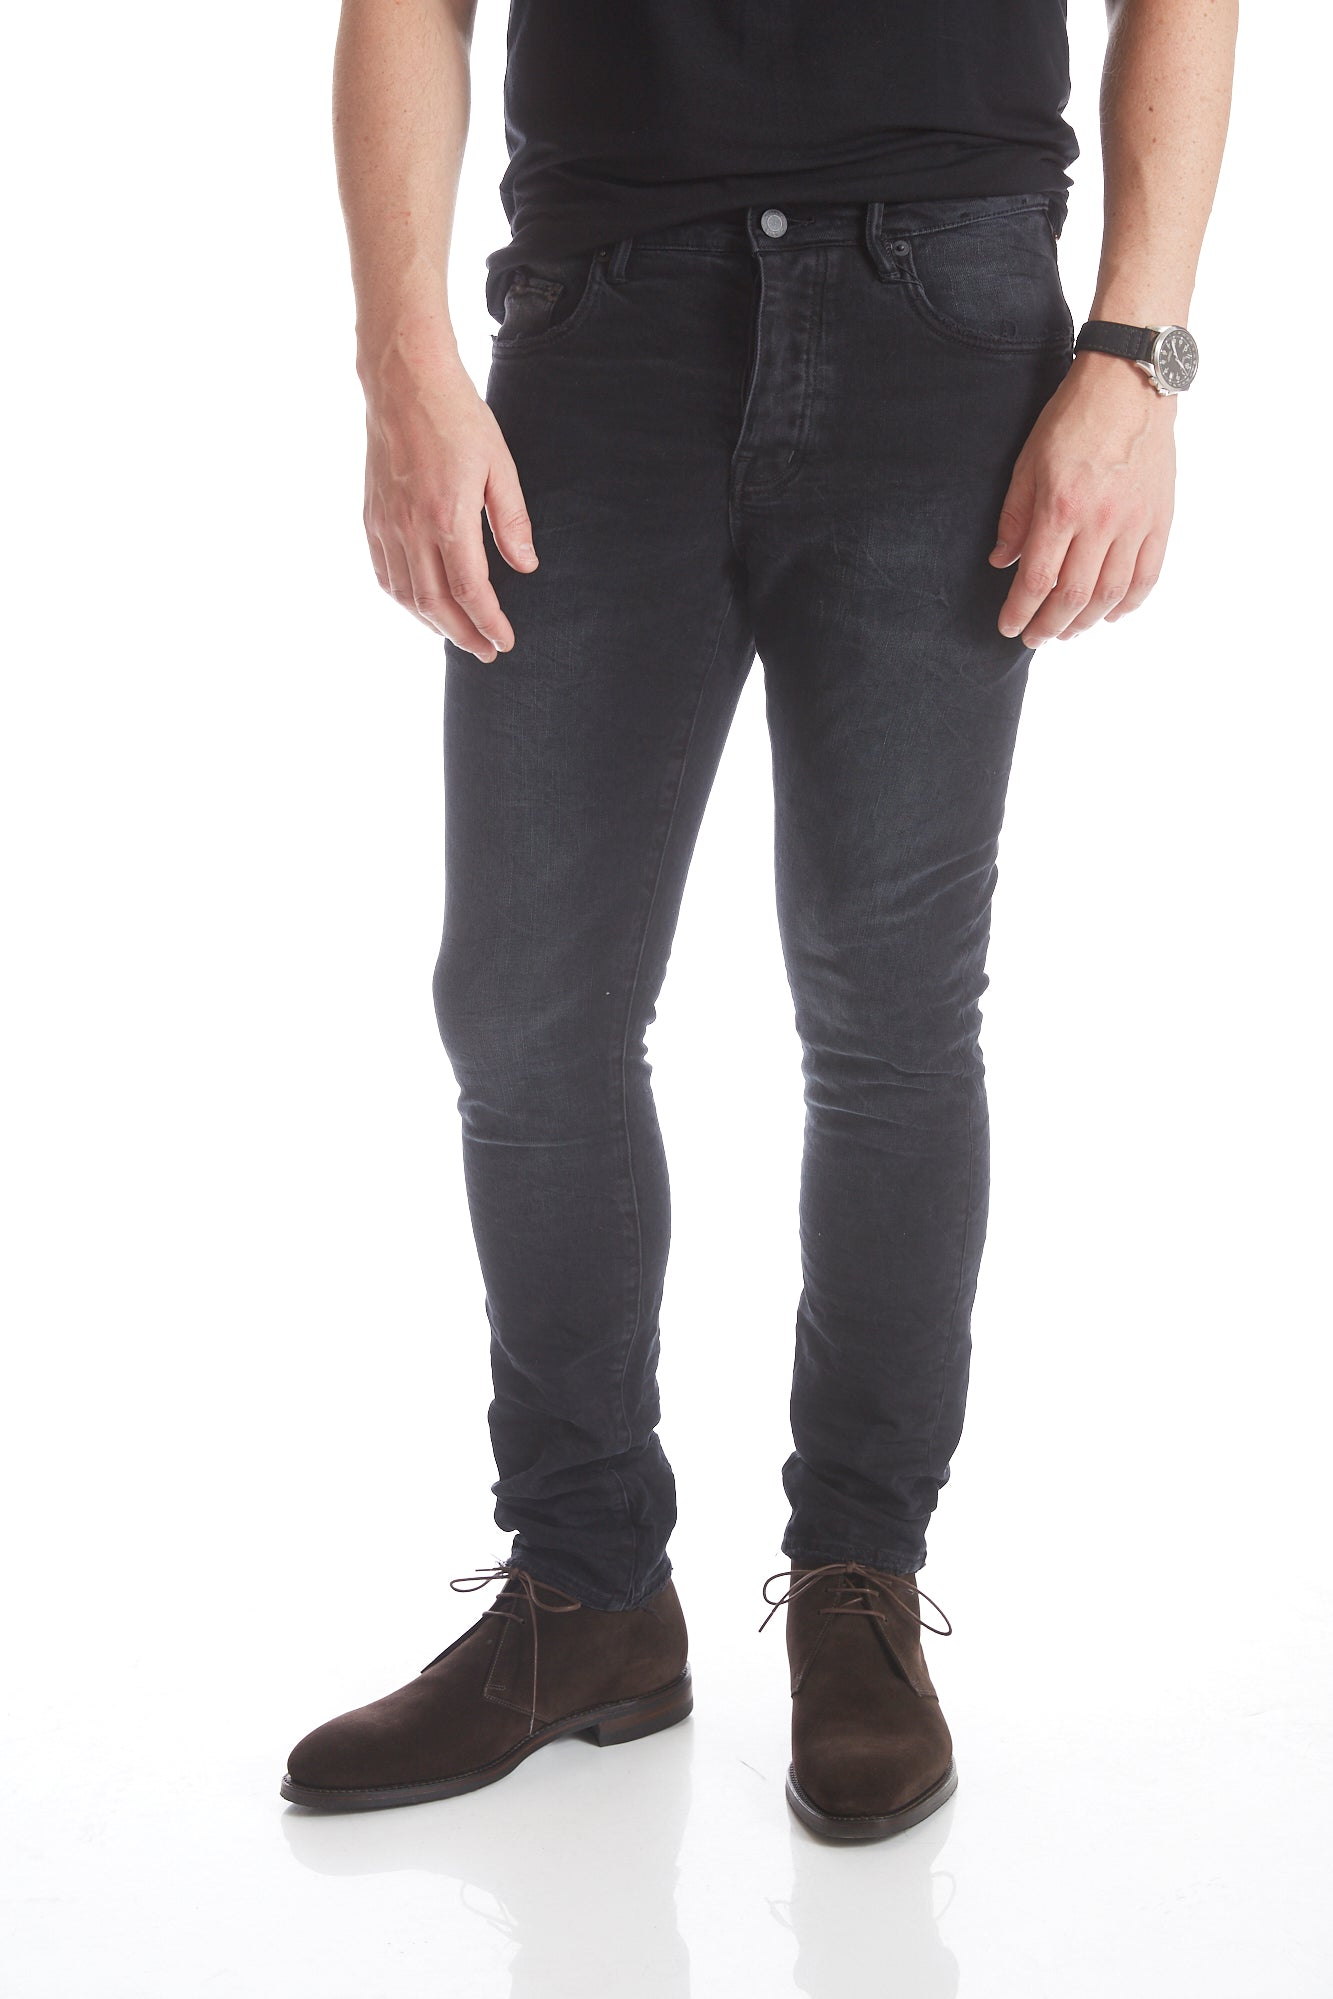 Purple Brand P001 Black Wash Jeans